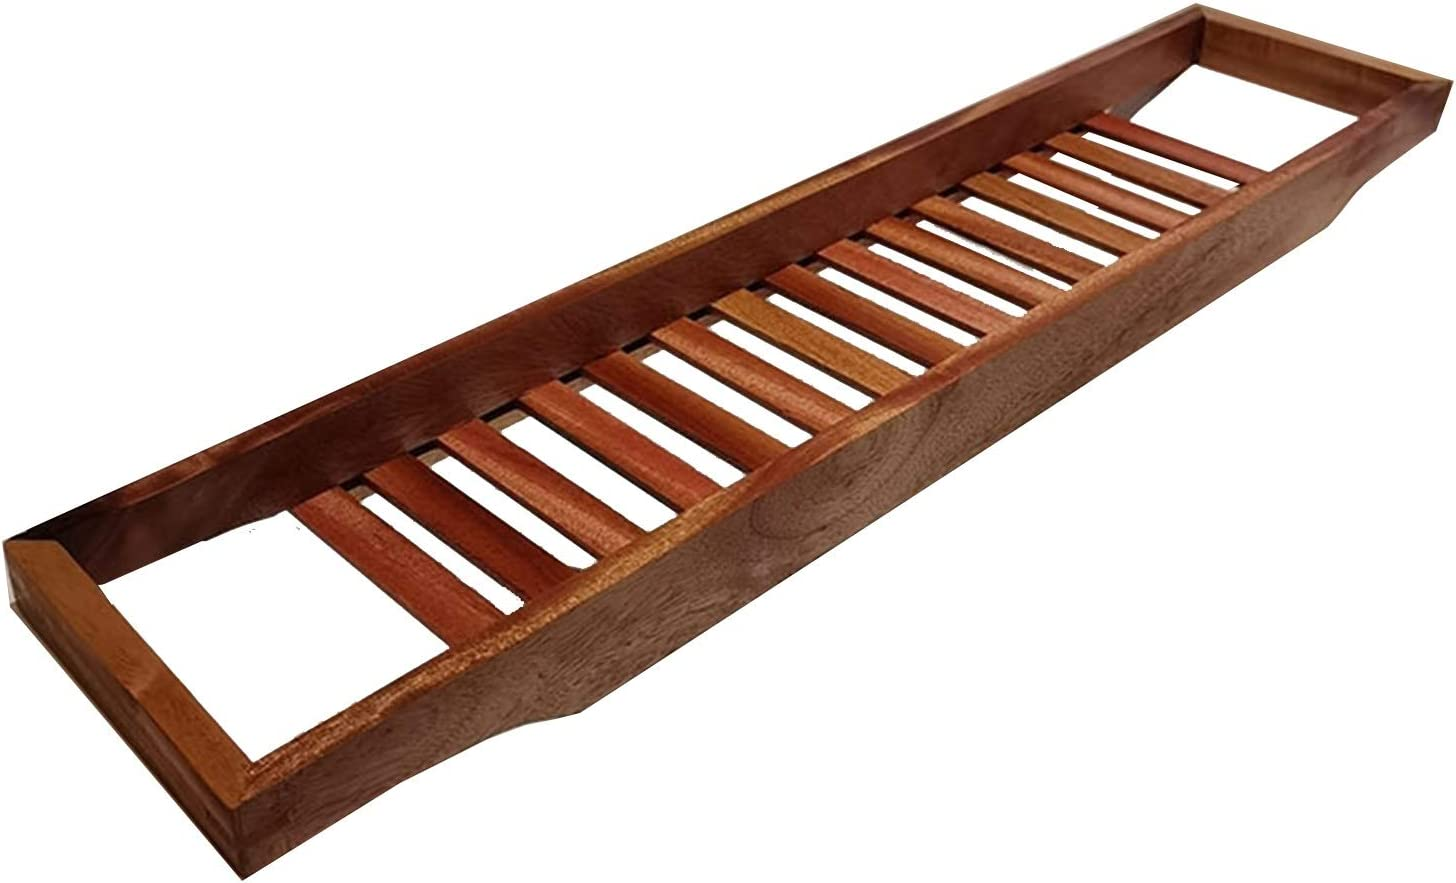 LIUMANG Durable and Delicate Purchase Wooden Bracket 2021new shipping free Pla Bathtub Non-Slip